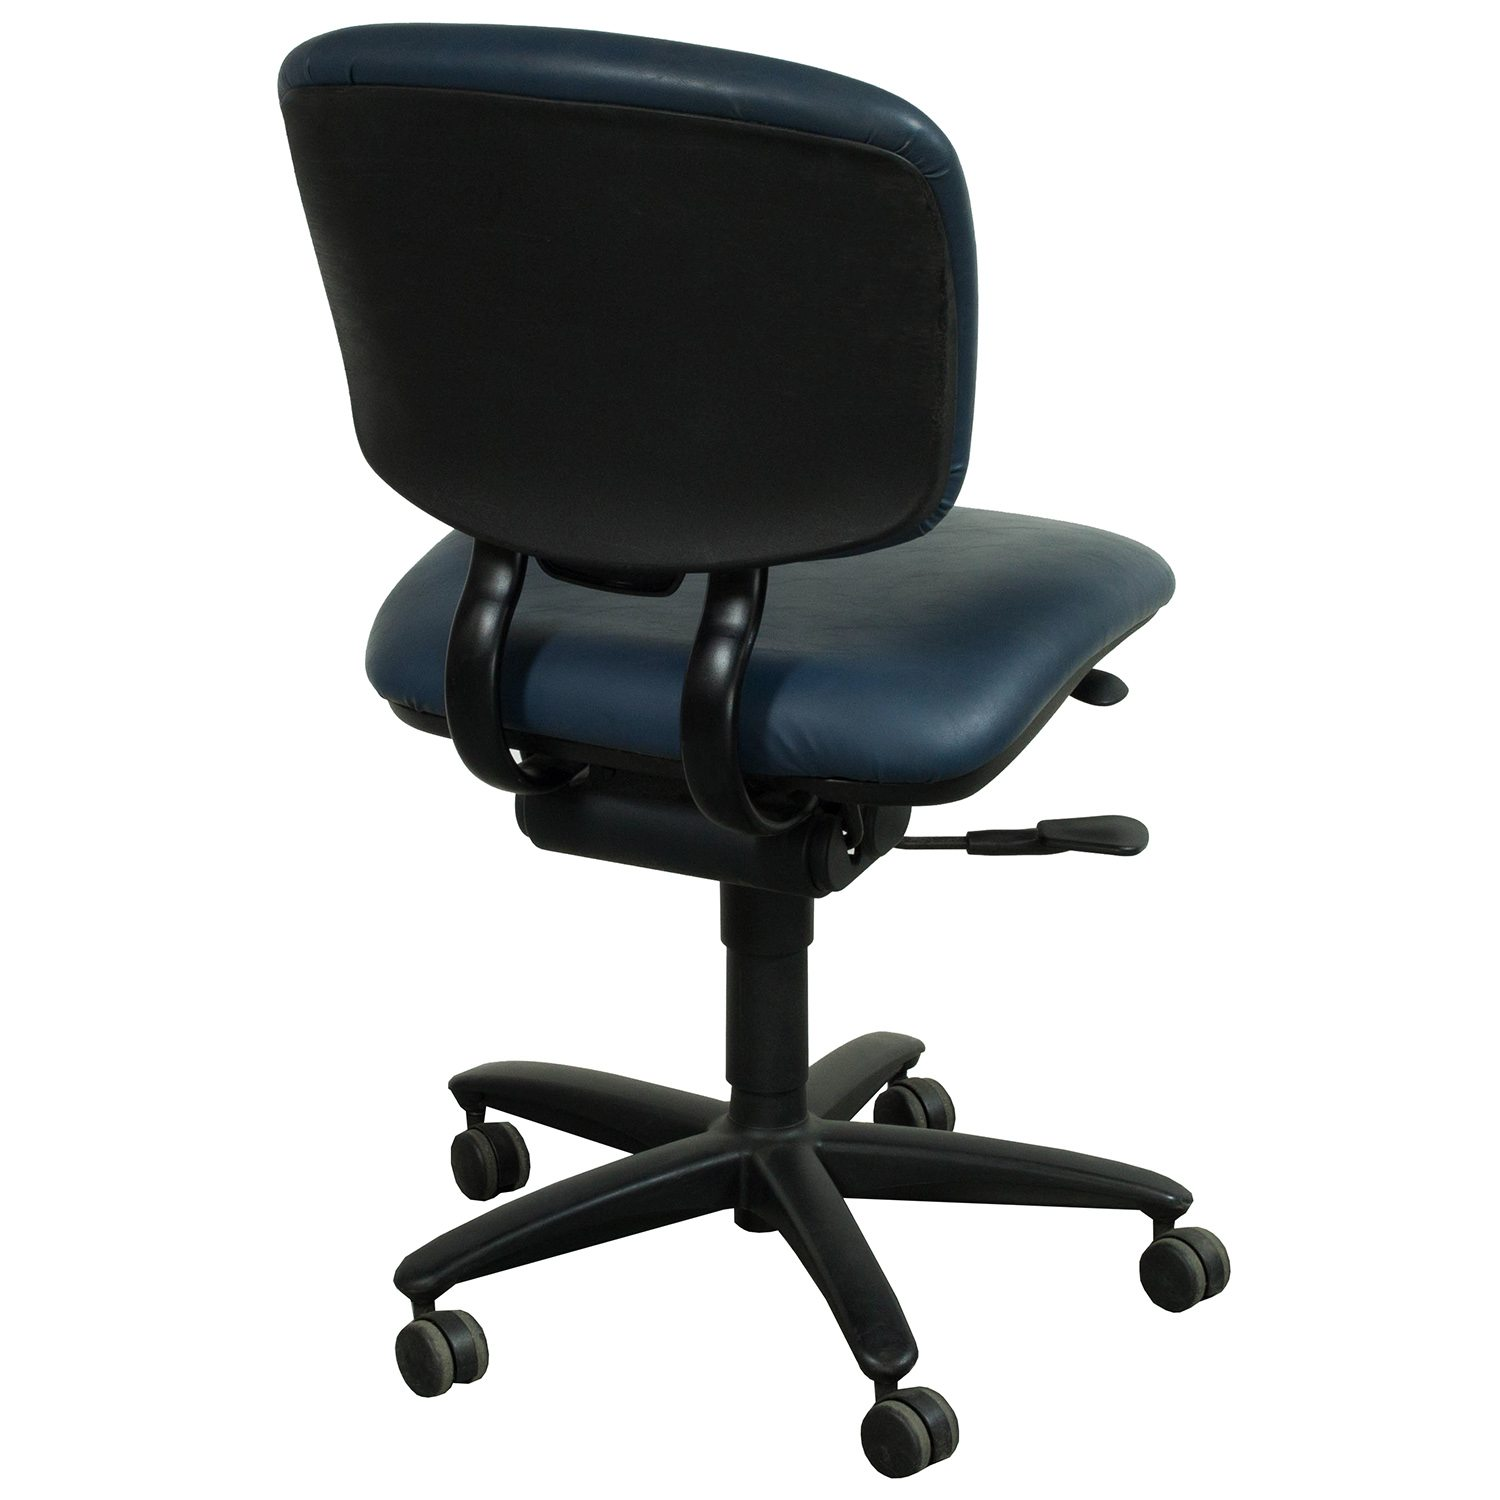 used computer chairs heywood wakefield cane chair haworth improv armless leather task blue